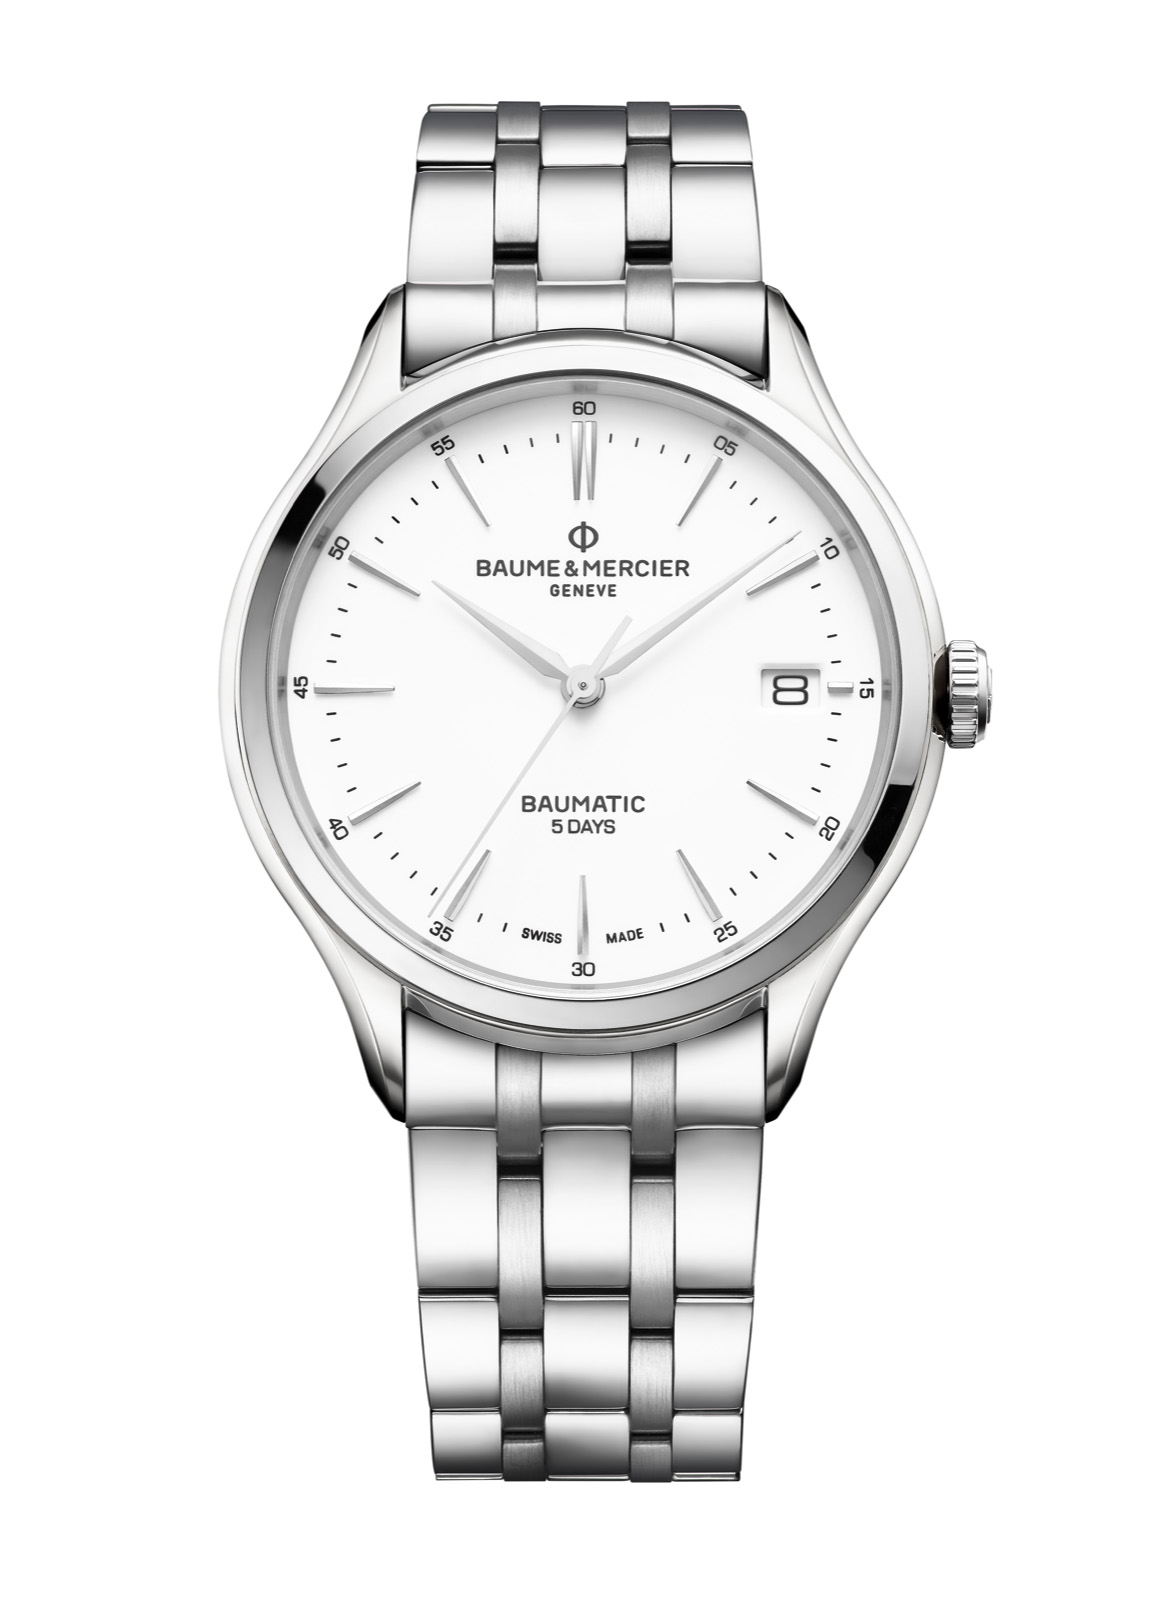 Baume & Mercier Baumatic 10400